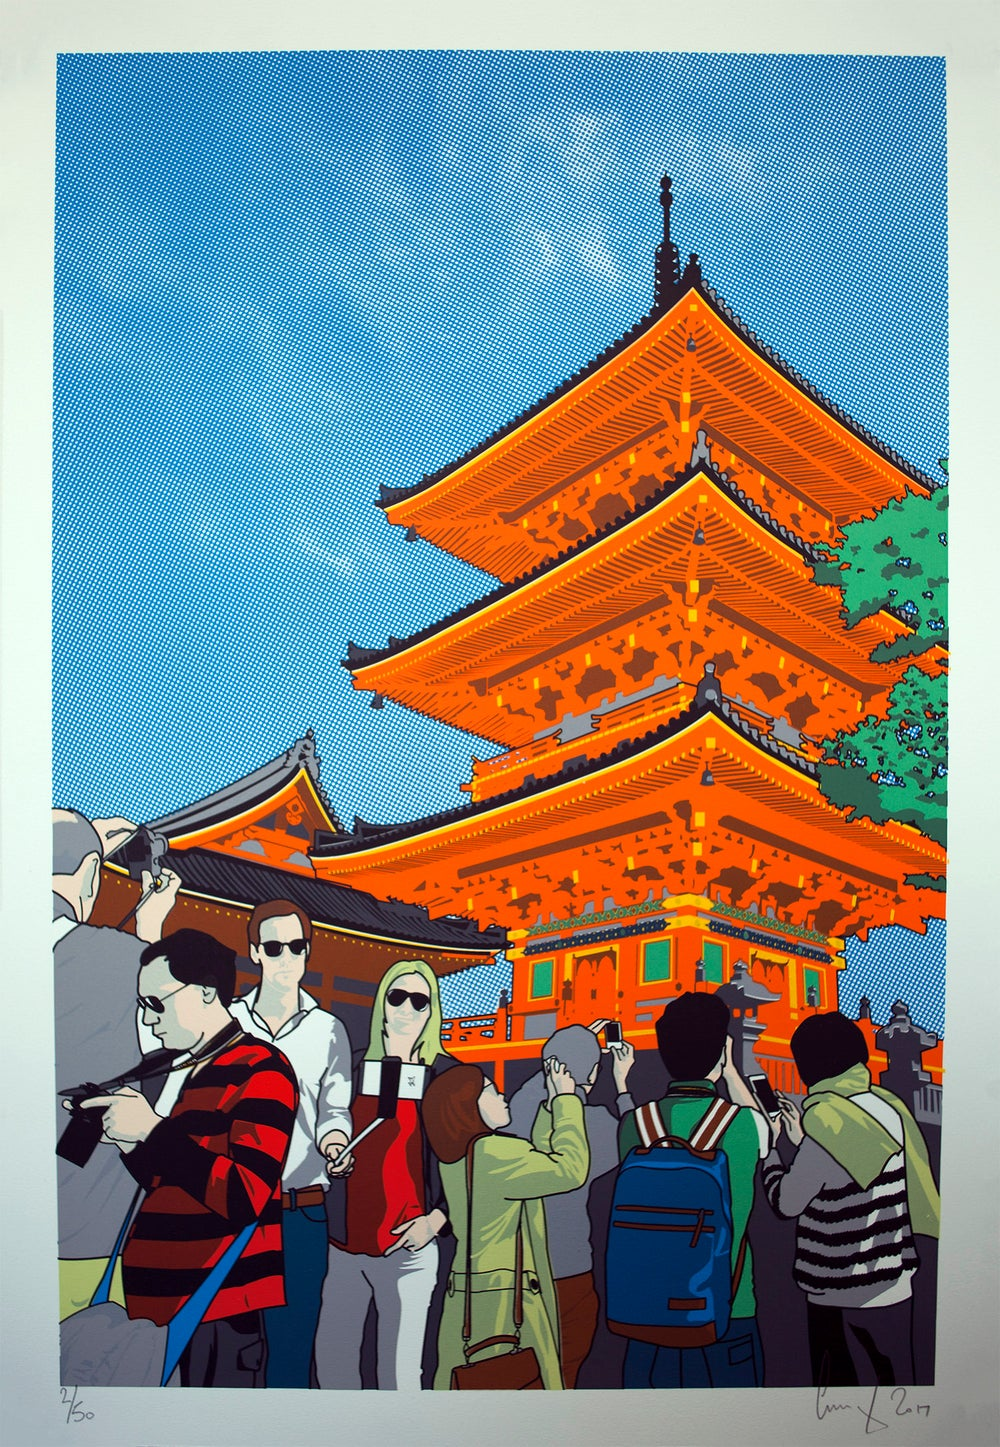 Image of Kyoto temple